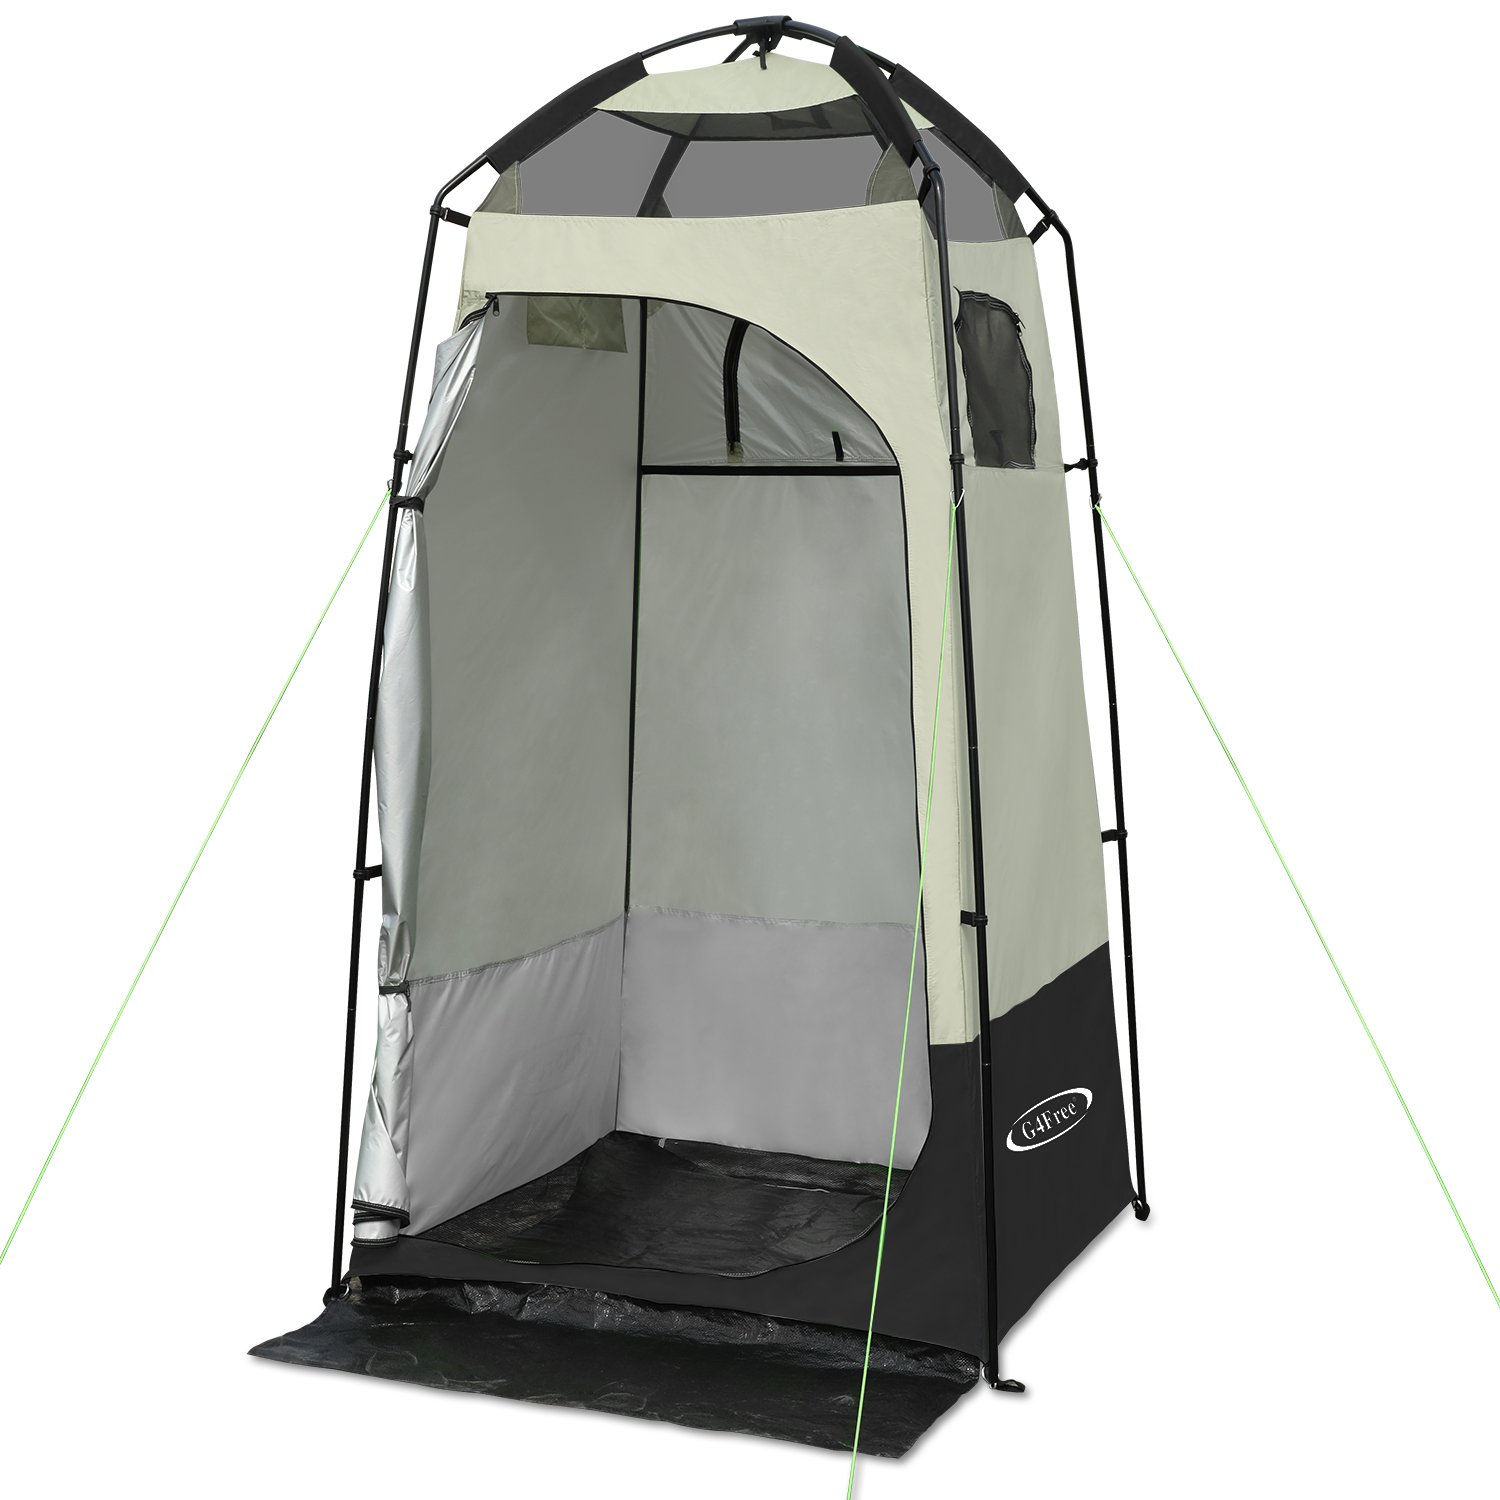 G4Free Outdoor Privacy Shelter